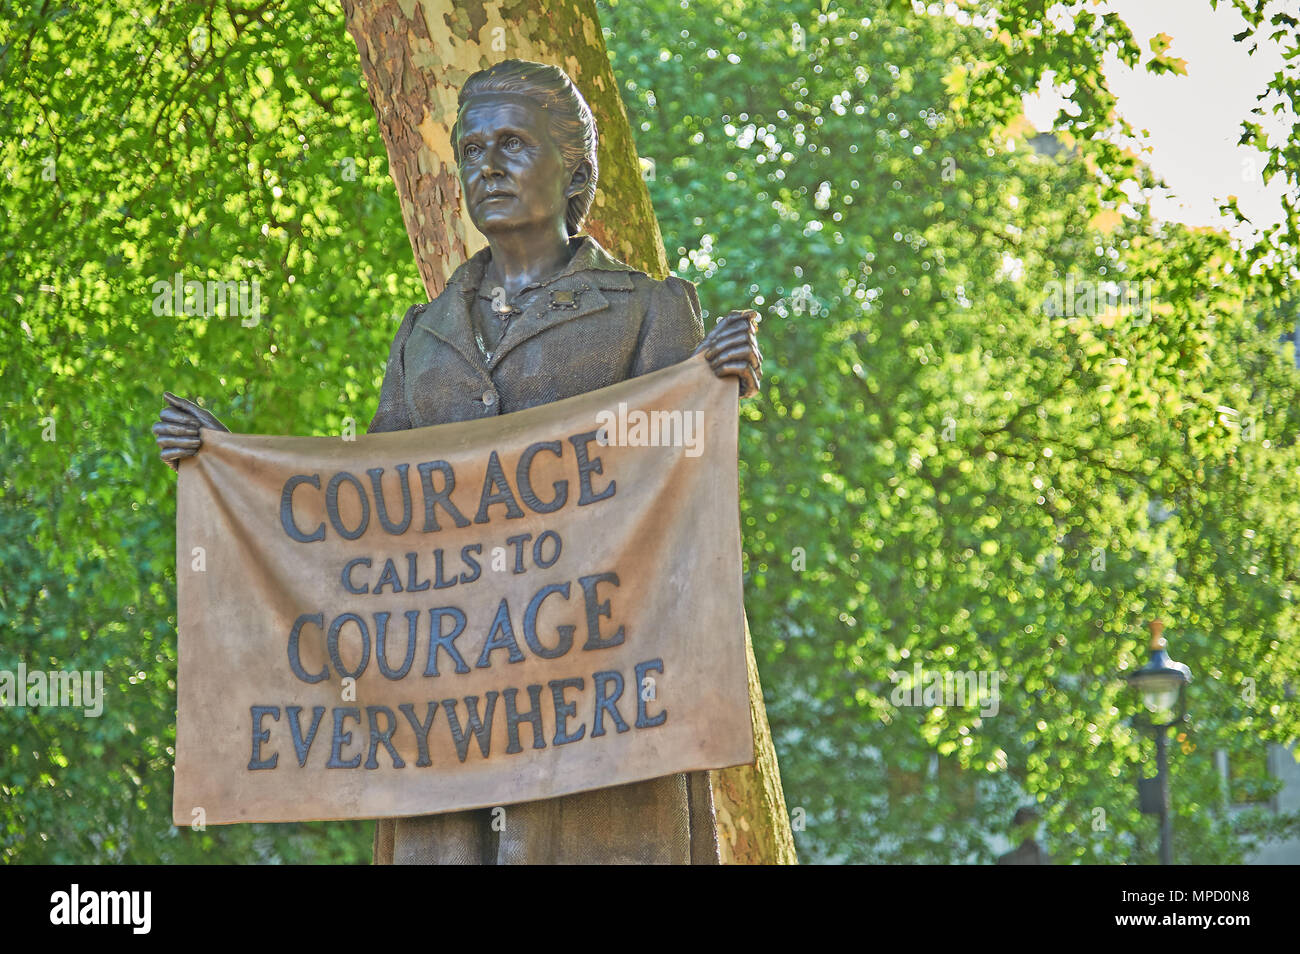 Statue of Millicent Fawcett, suffragist and votes for women campaigner in Parliament Square London - Stock Image